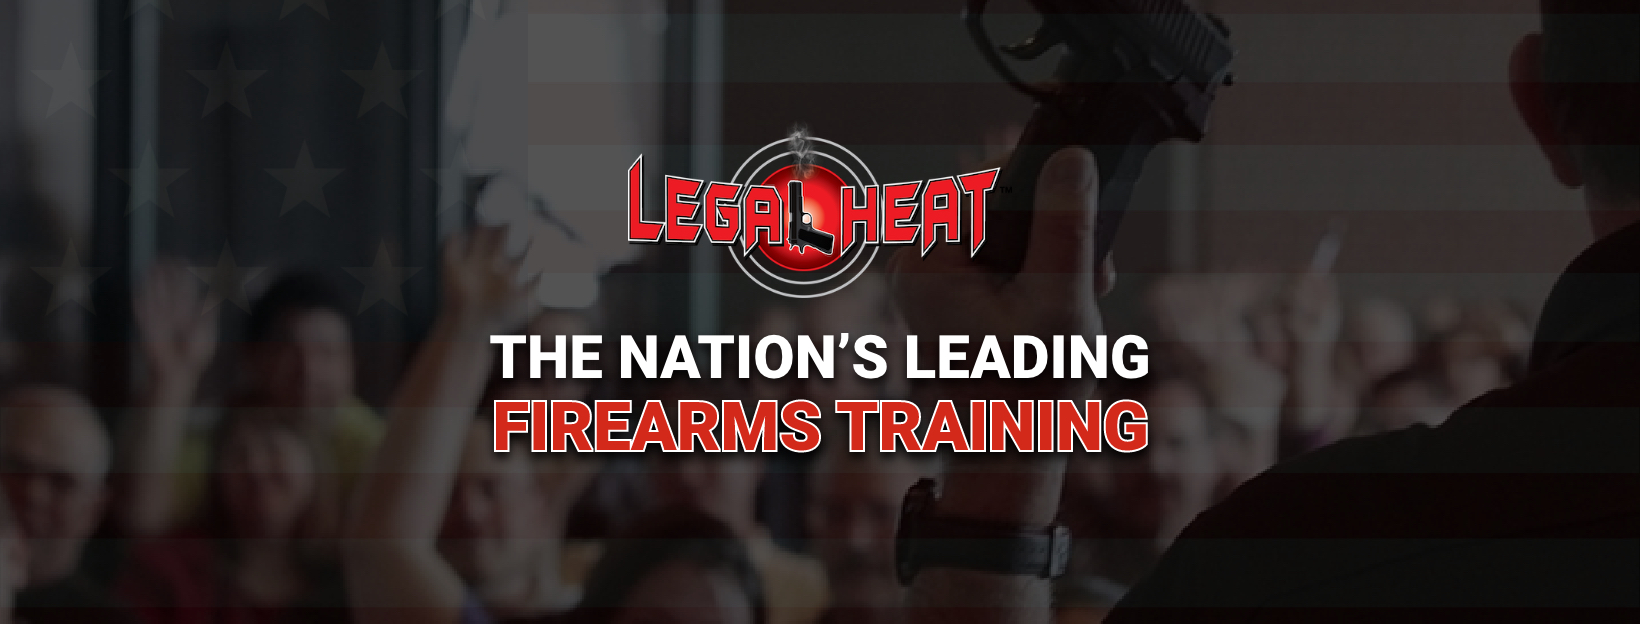 Legal Heat reviews   Firearm Training at 26210 Emery Rd - Cleveland OH